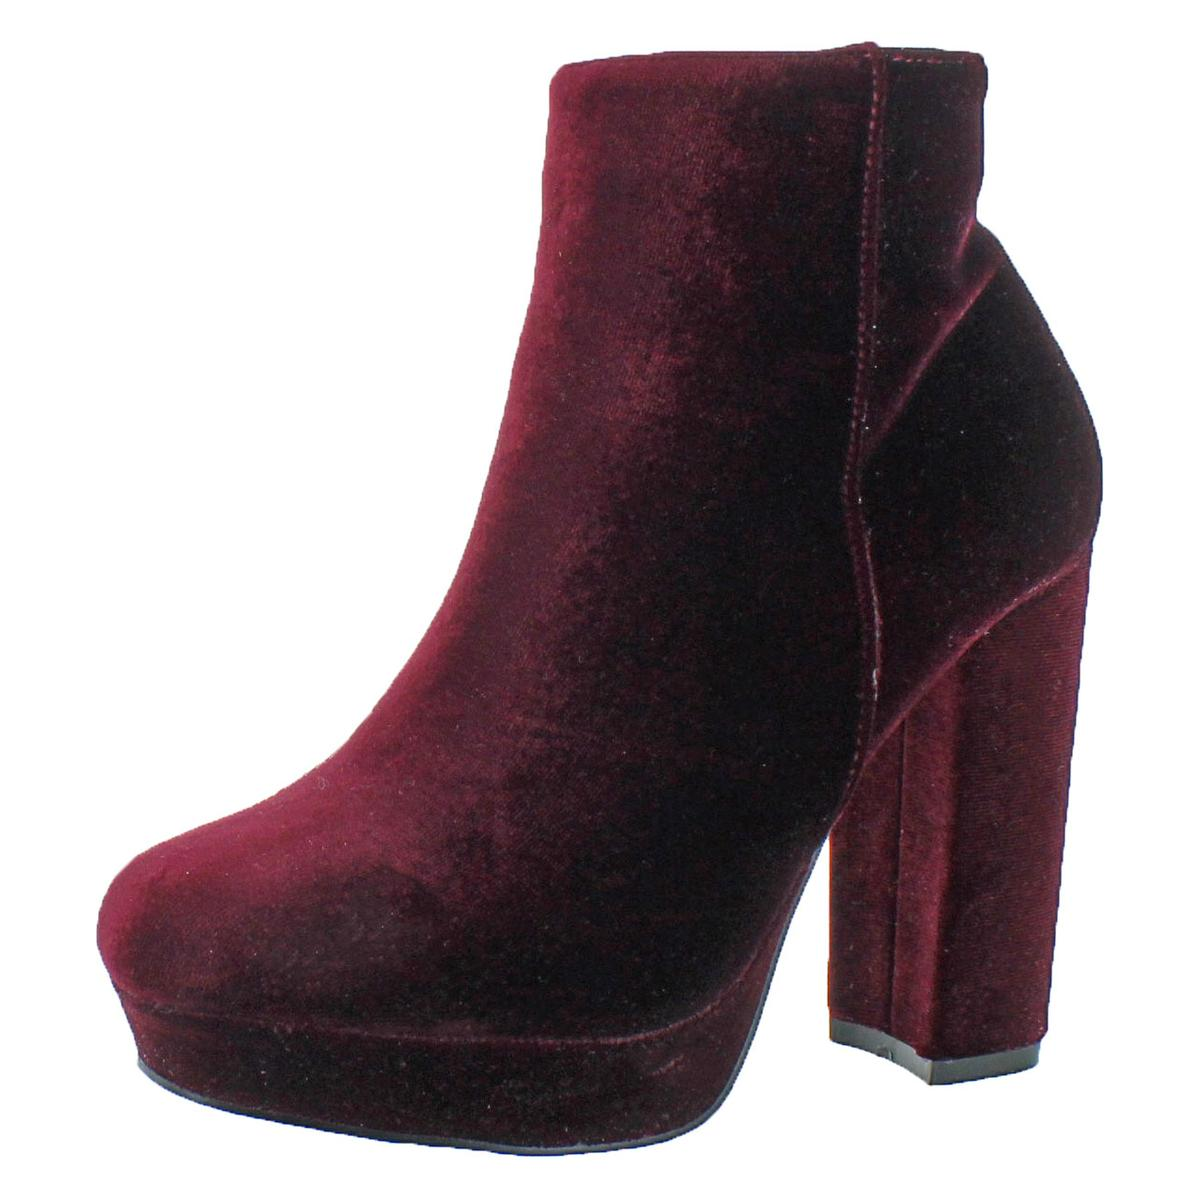 714496dcc129 Details about Steve Madden Womens Pacie Red Velvet Ankle Boots Heels 10  Medium (B